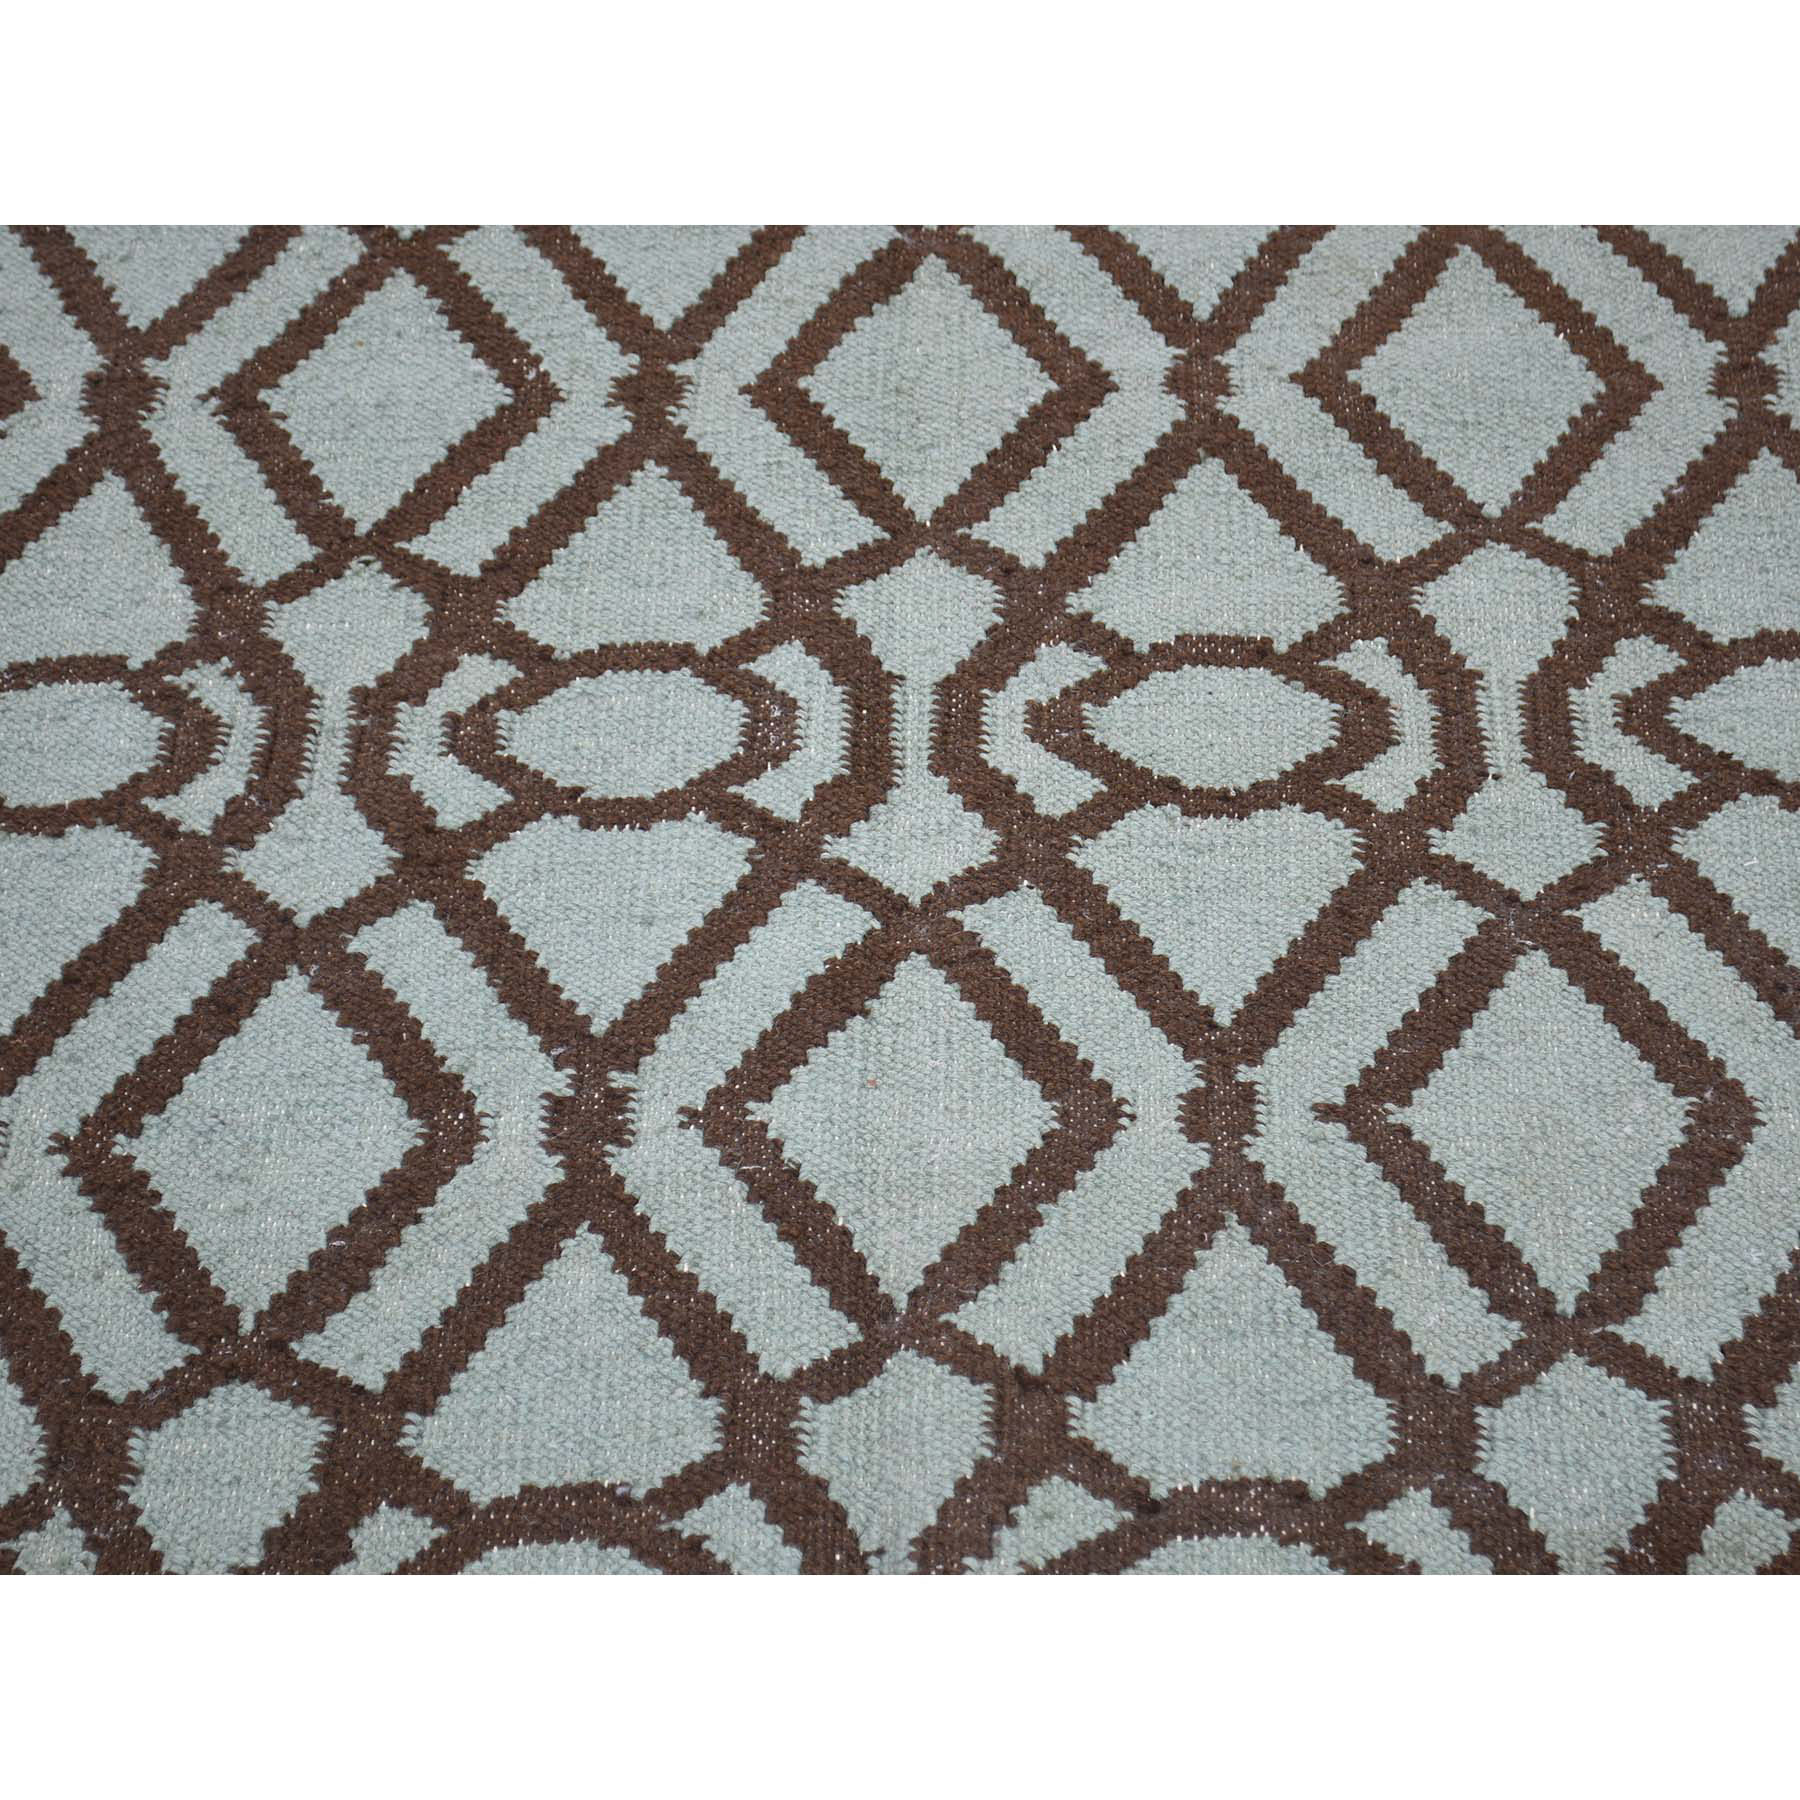 4-2--x5-10-- Pure Wool Hand Woven Grey Durie Kilim Reversible Rug